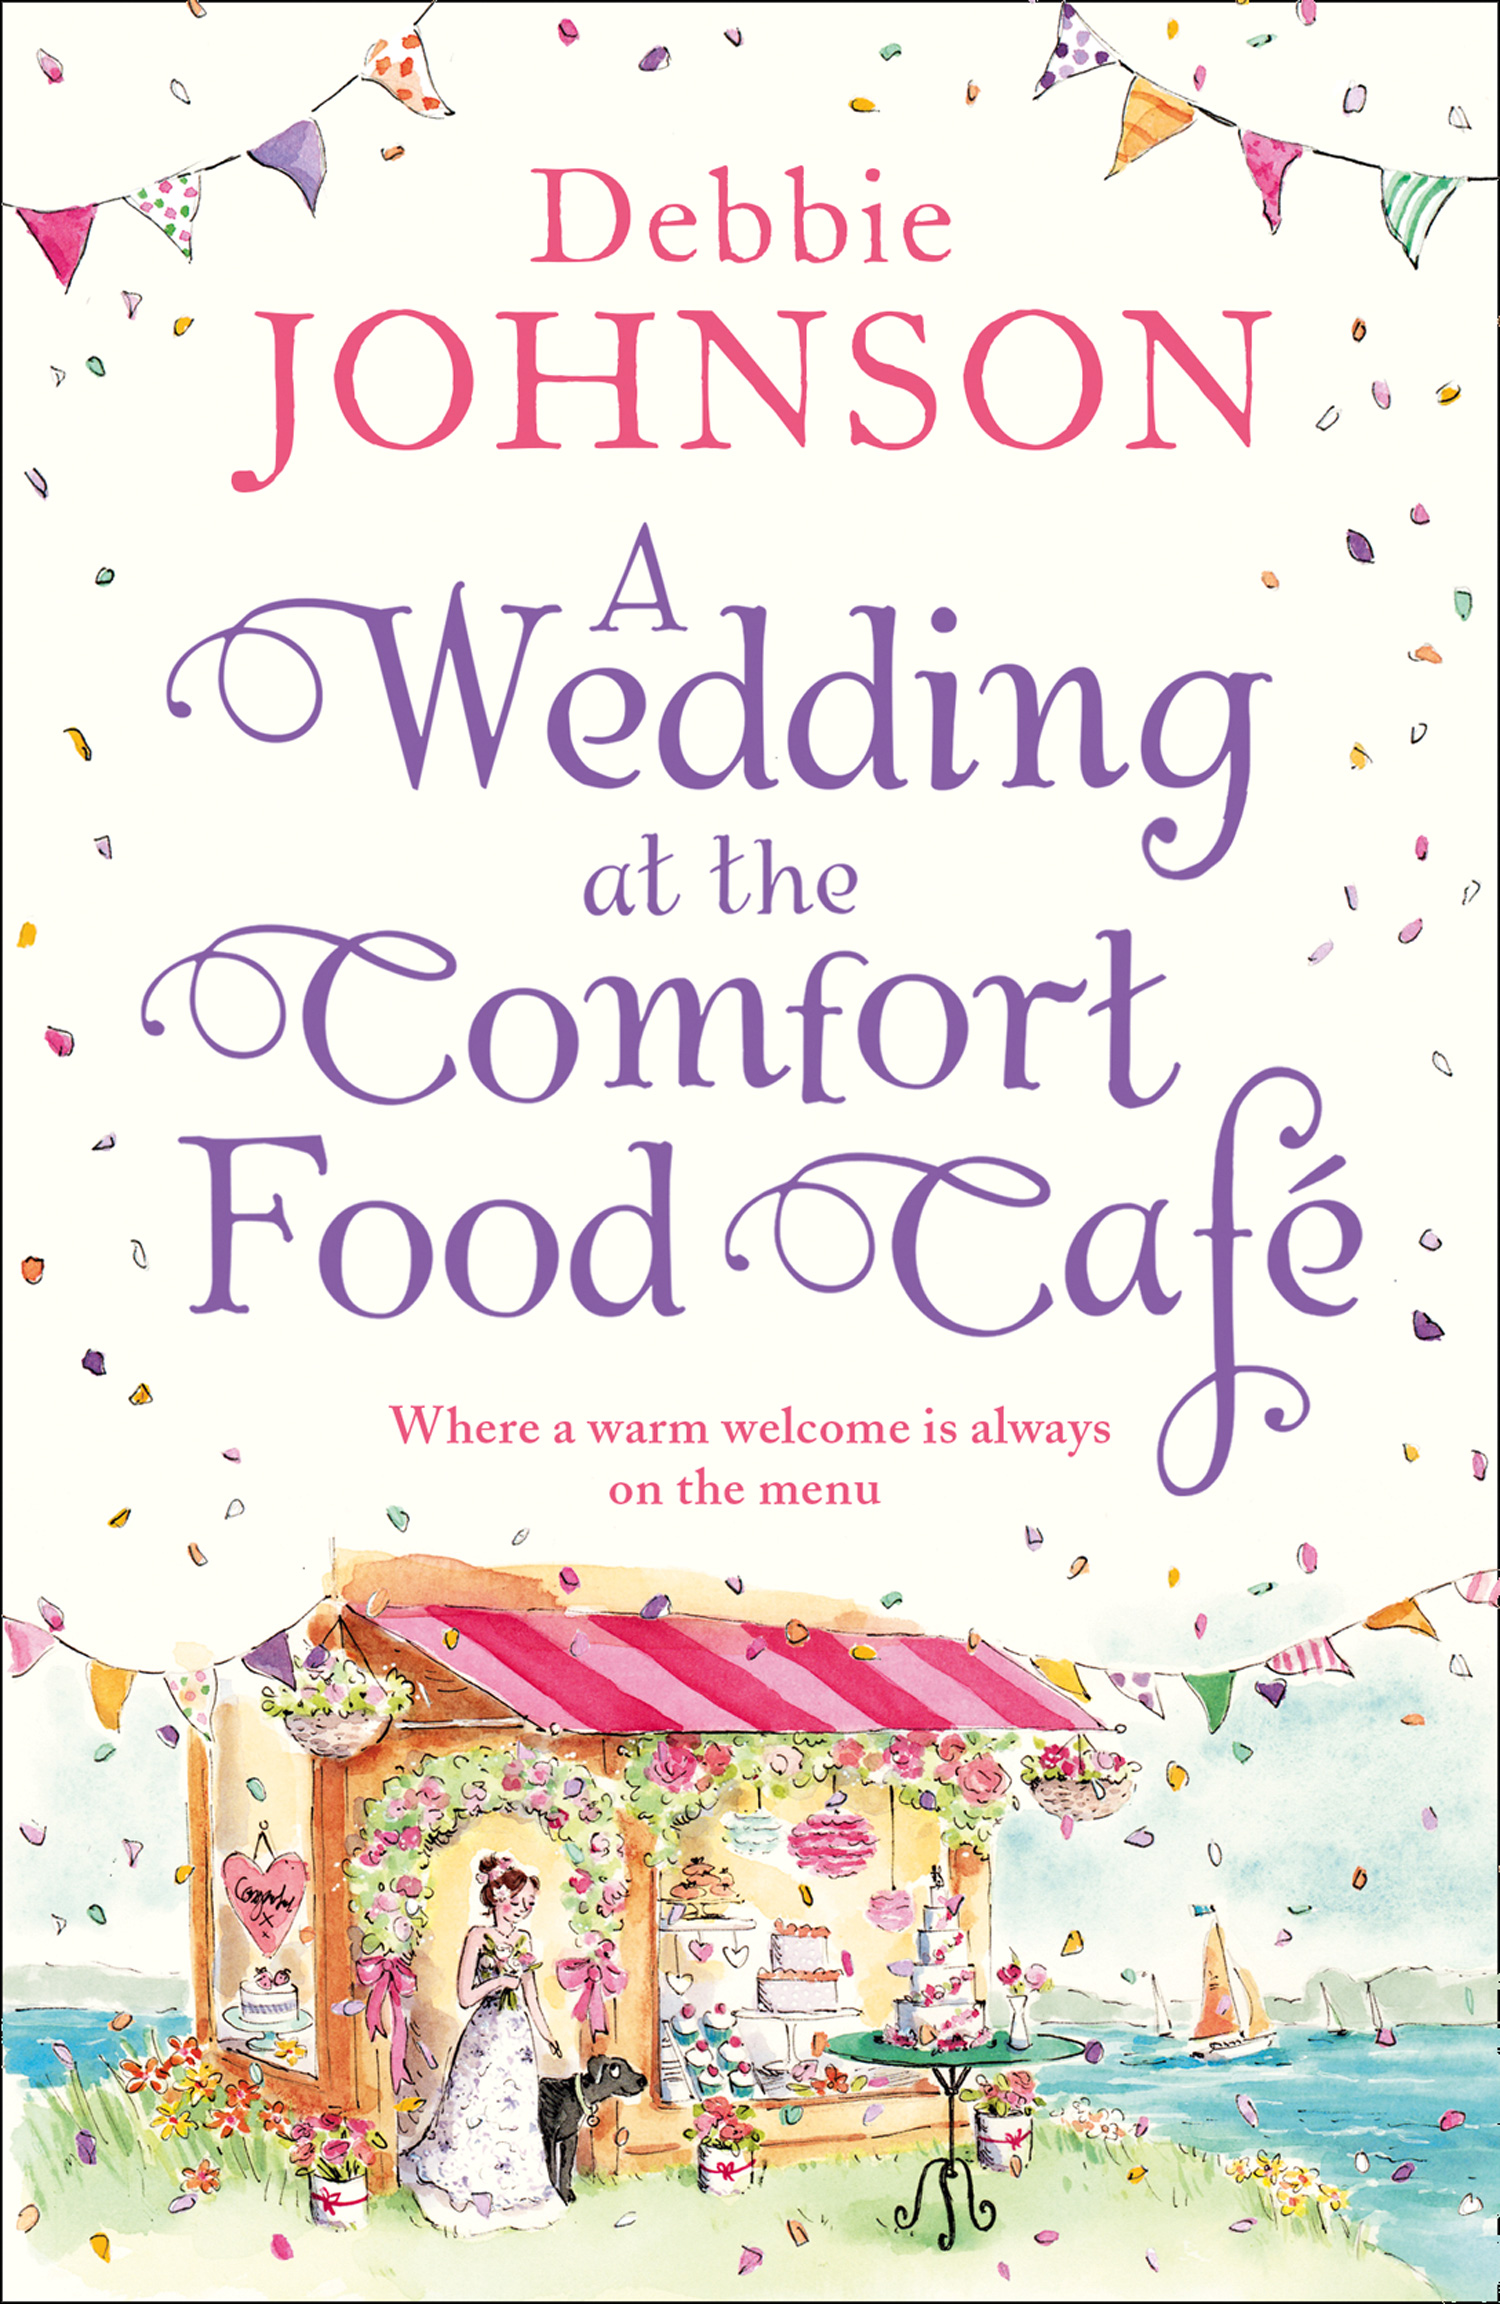 Debbie Johnson A Wedding at the Comfort Food Cafe